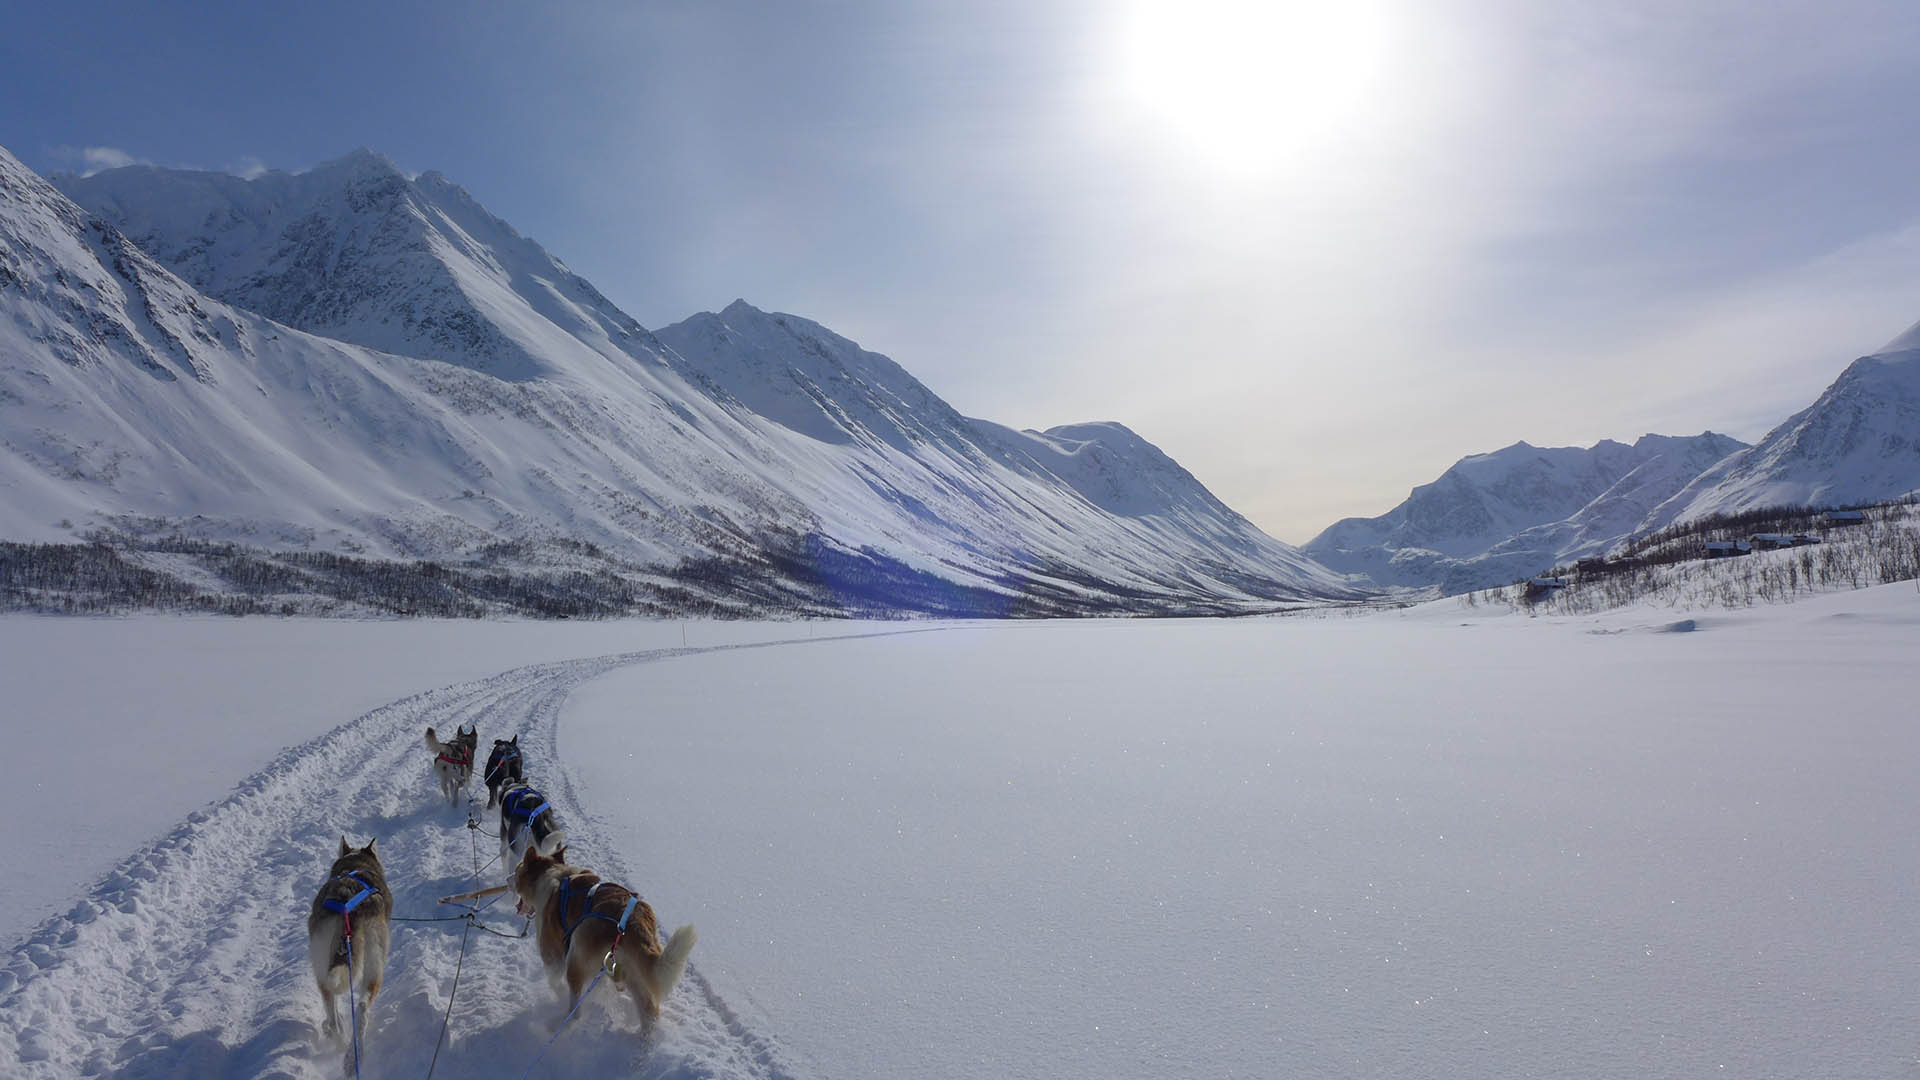 Lyngen Experience: A gem in the heart of the Lyngen Alps, Scan Magazine